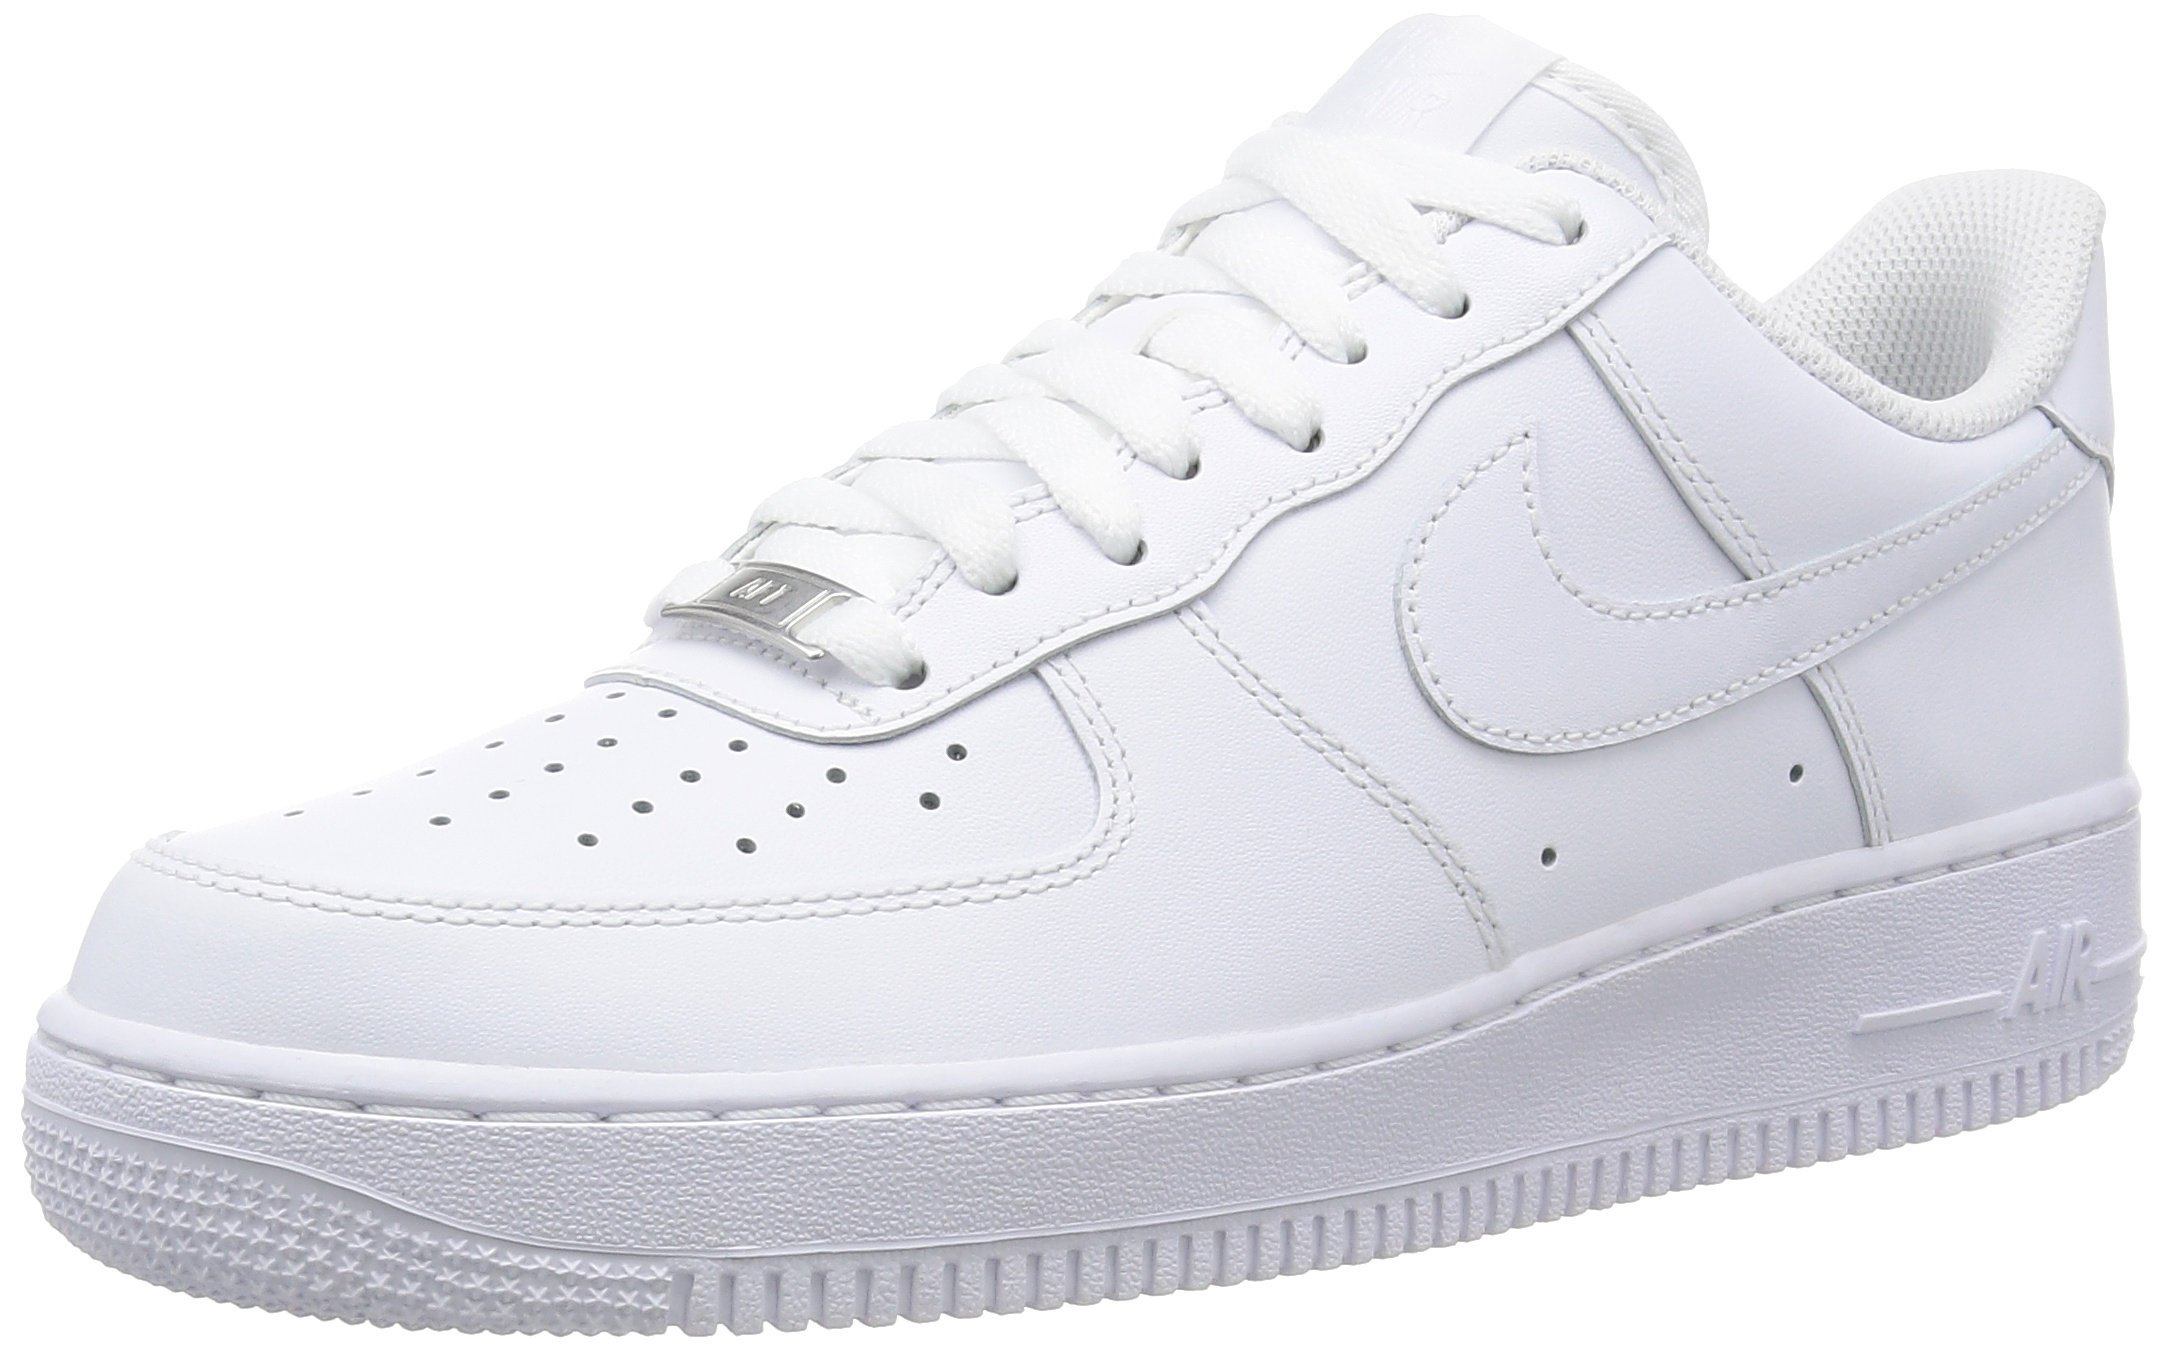 Nike Men's  Air Force 1 '07 Shoes 315122 White/White 10.5 by Nike